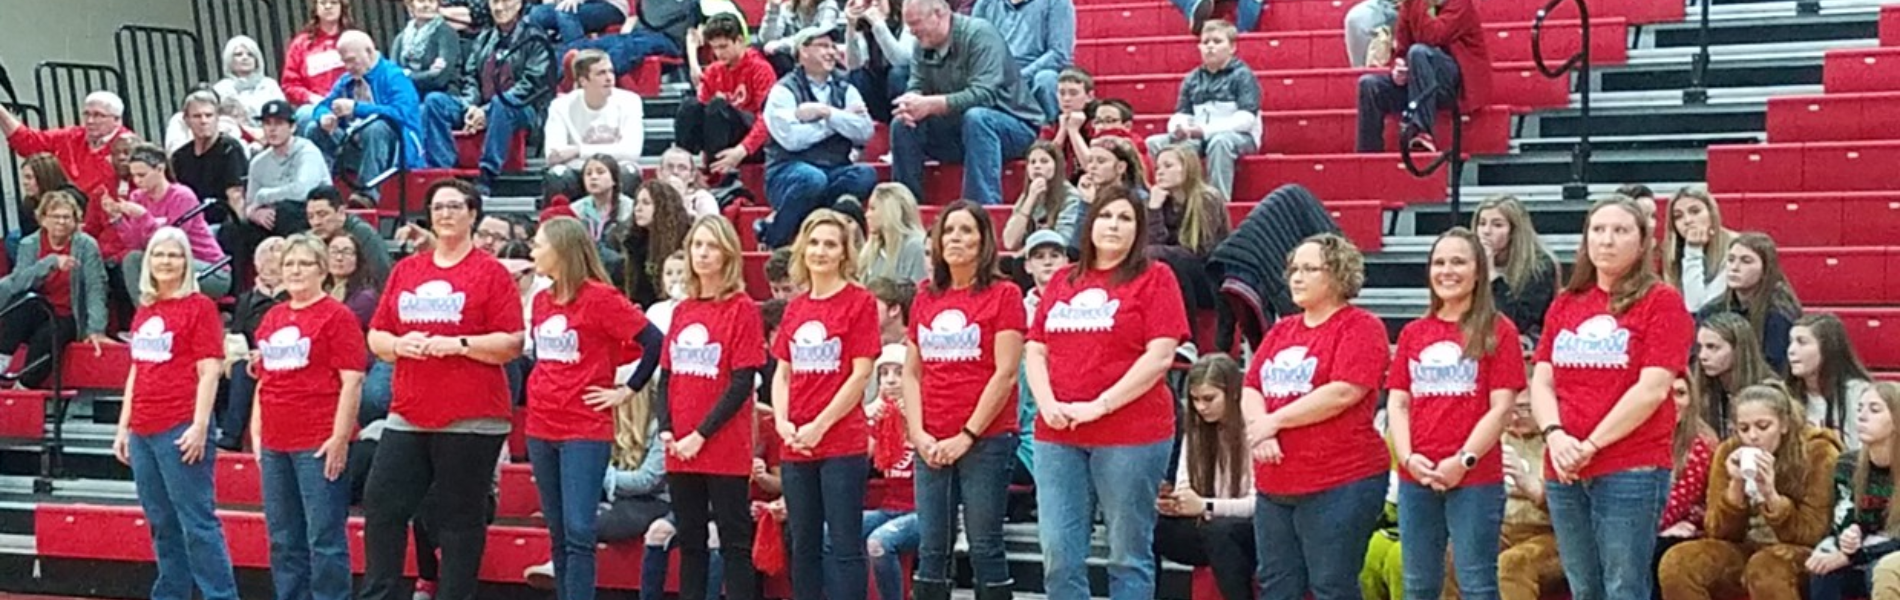 1993 State Championship Volleyball recognized during JV & Varsity Boys Basketball game